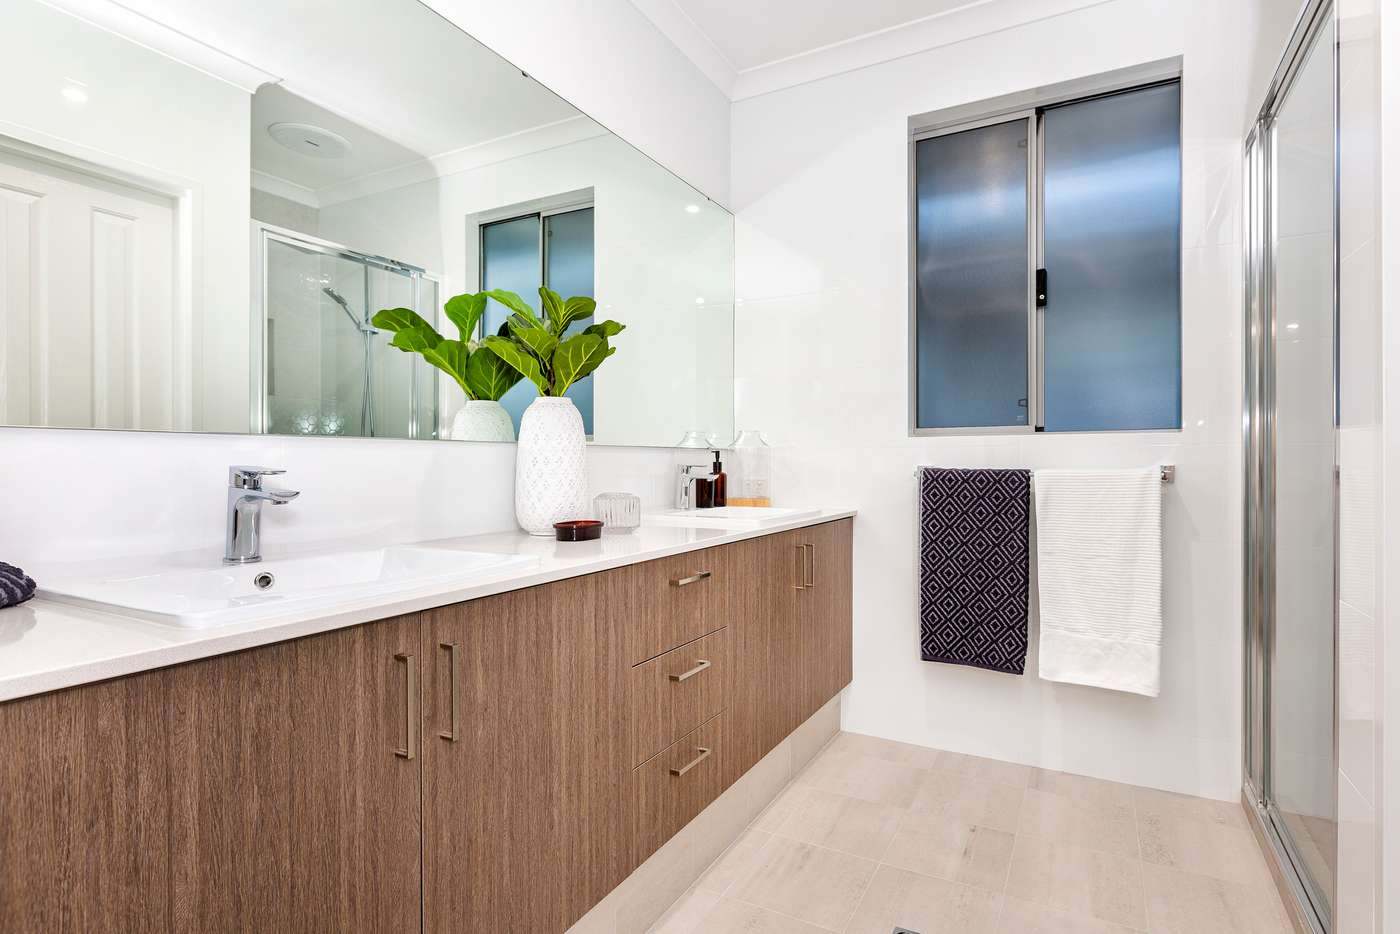 Sixth view of Homely townhouse listing, 78 Norwood Road, Rivervale WA 6103